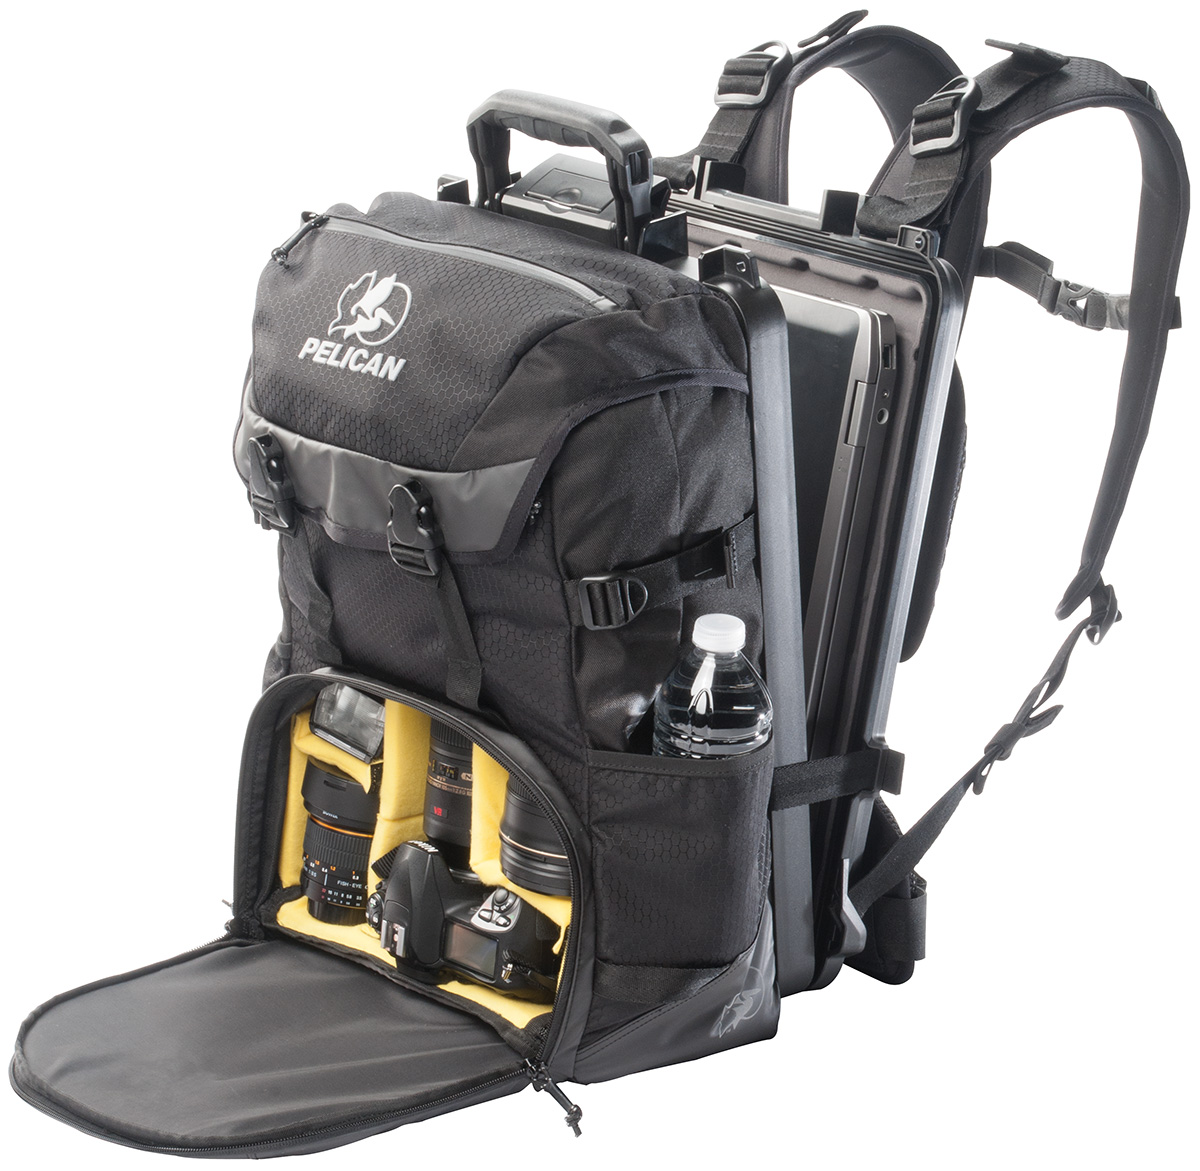 pelican-s130-backpack.jpg